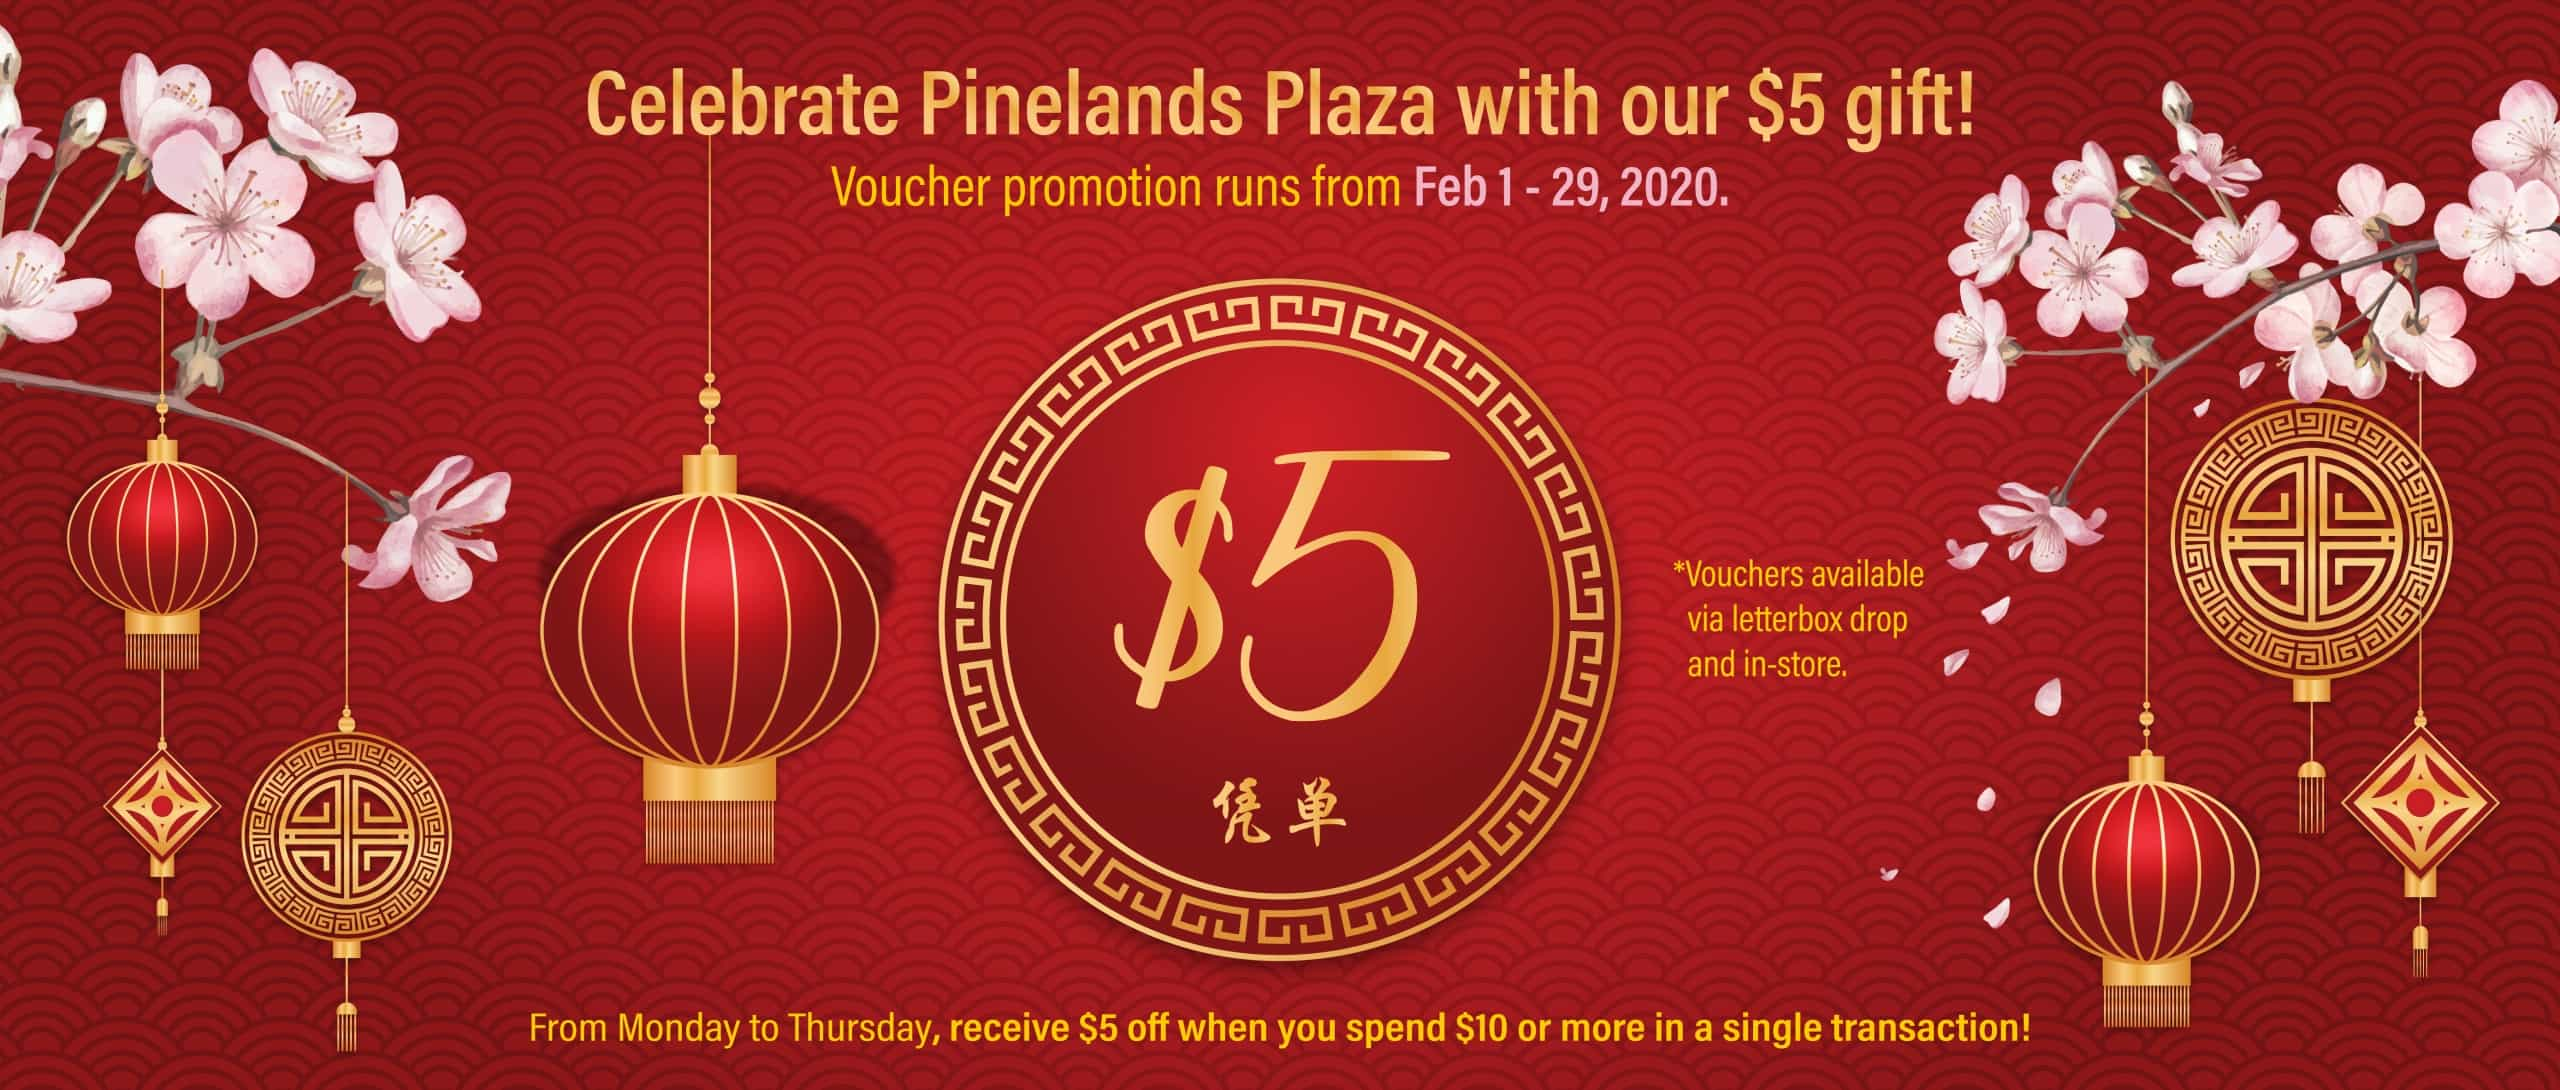 Celebrate Pinelands Plaza